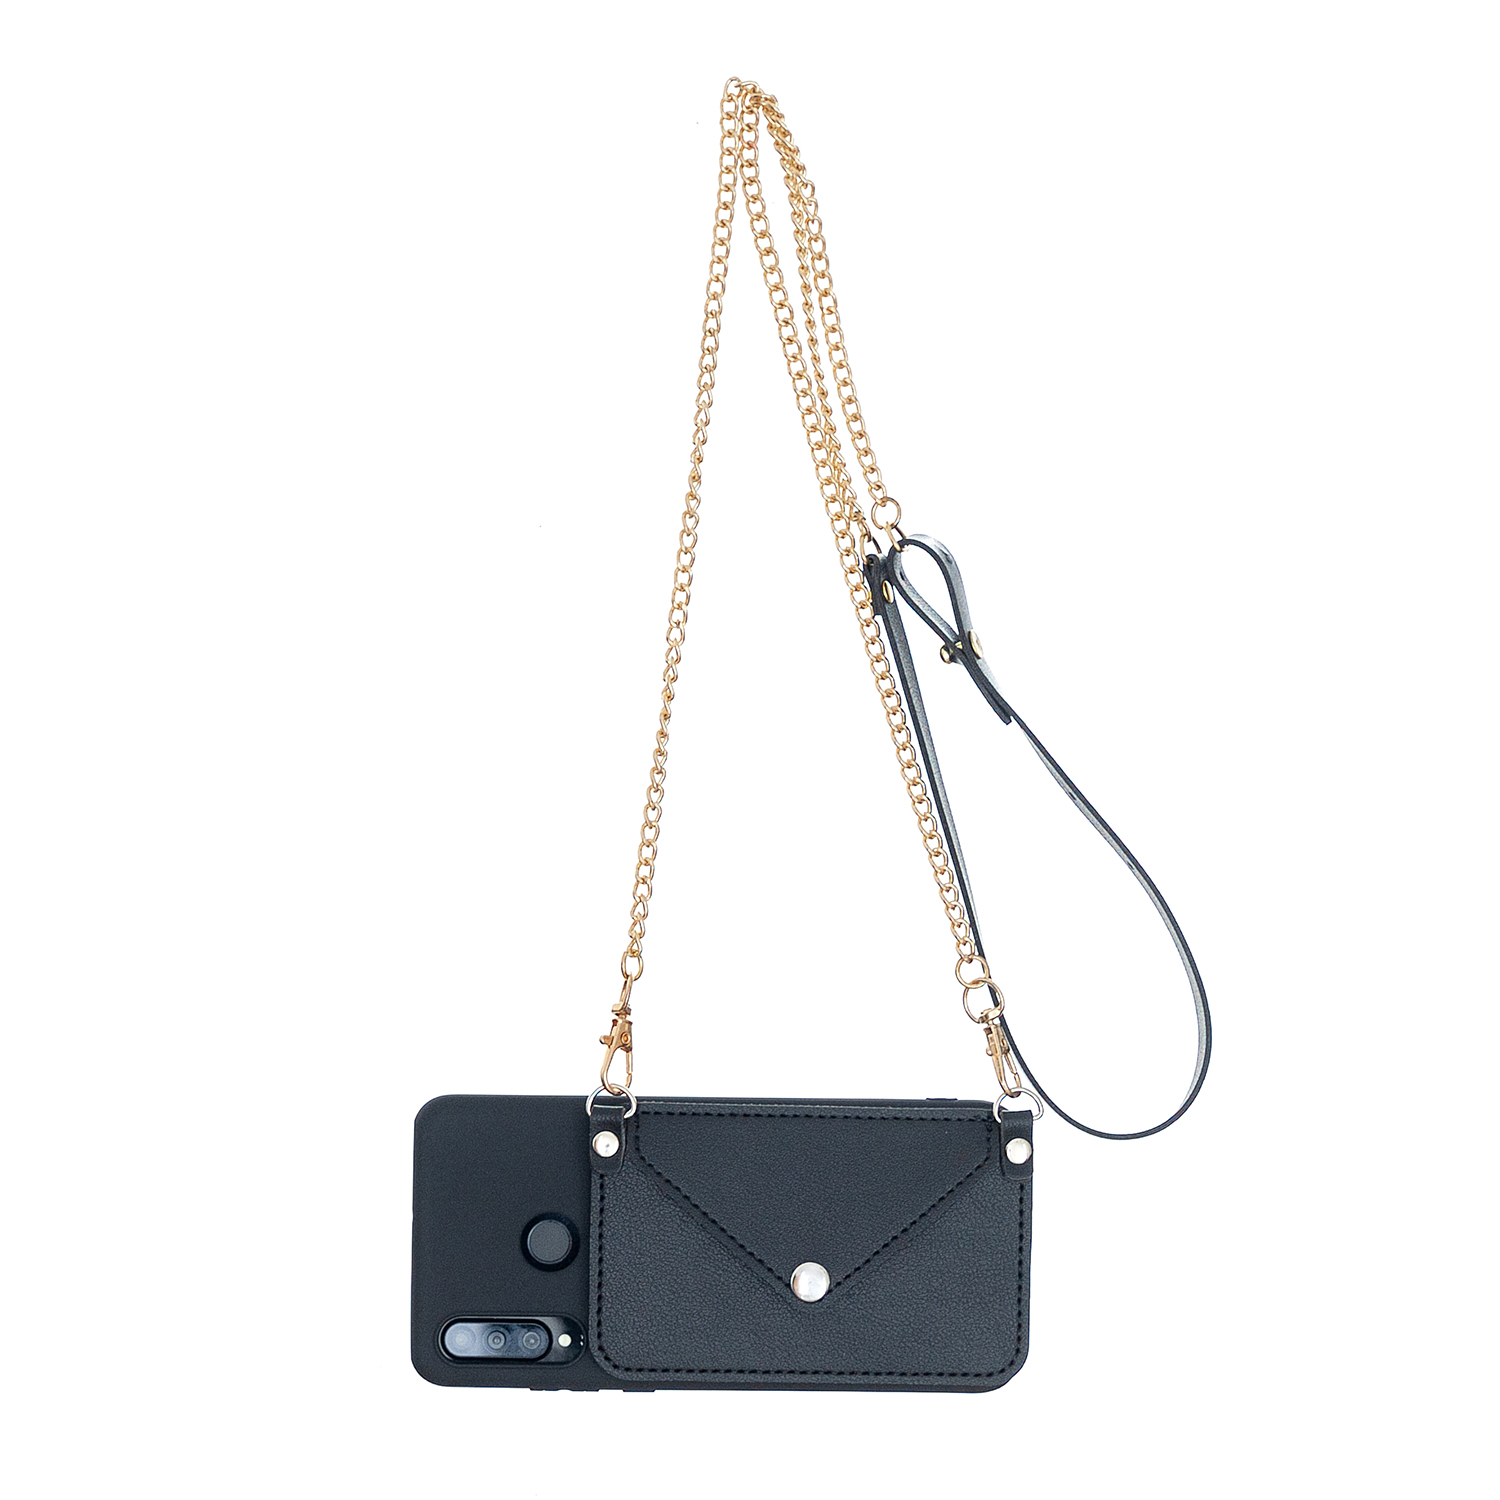 For HUAWEI P30/P30 Lite/P30 Pro Mobile Phone Cover with Pu Leather Card Holder + Hand Rope + Straddle Rope black